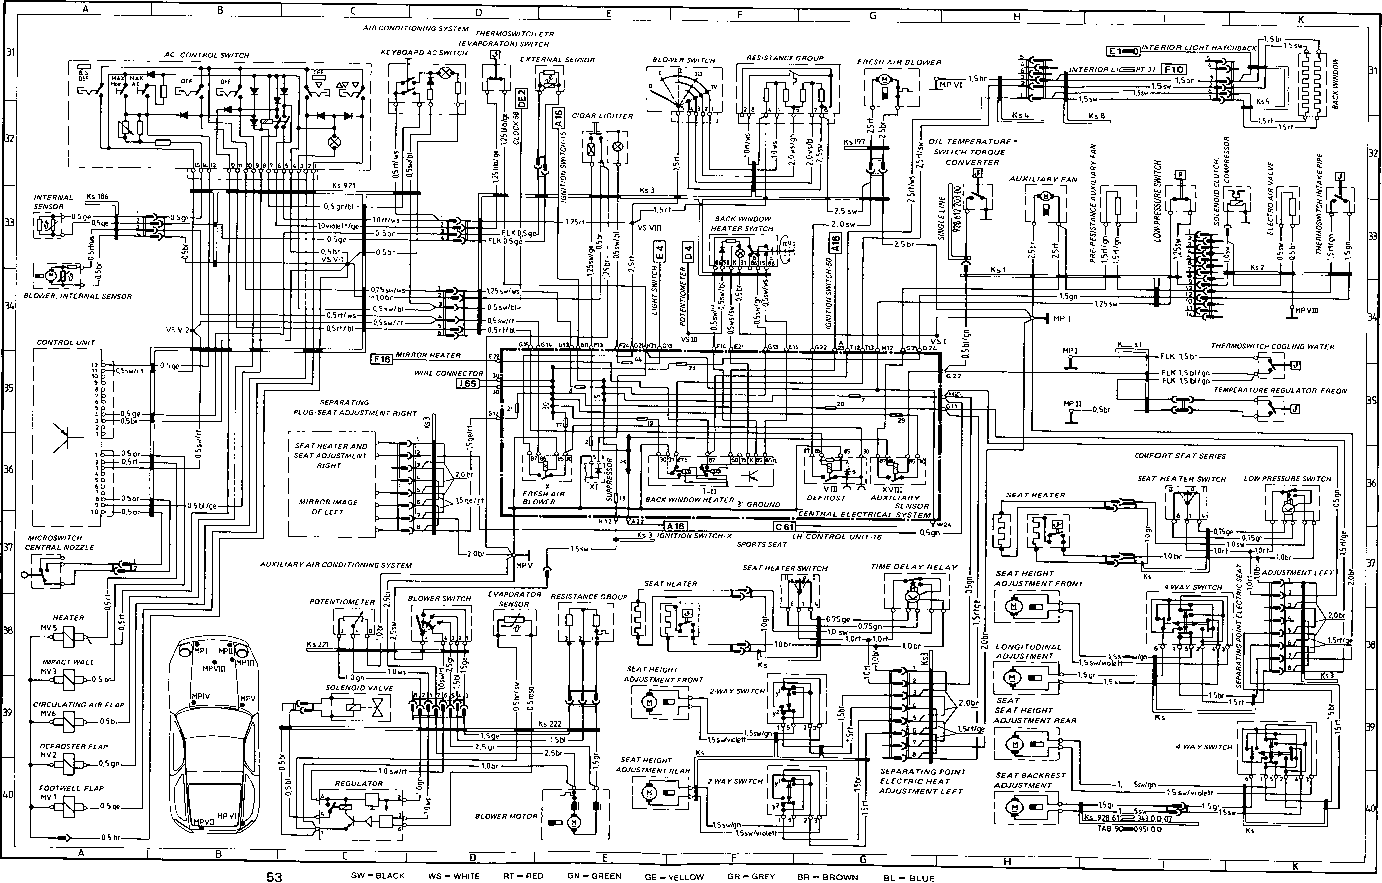 Search together with Dimarzio Ibz Wiring Diagram 2088950996 10a7611d9a O And likewise Watch likewise FCA9EB91410FDFE5C12575730051B87E additionally 318548 930 Engine  partment Fuses And Relays. on porsche 911 wiring diagram